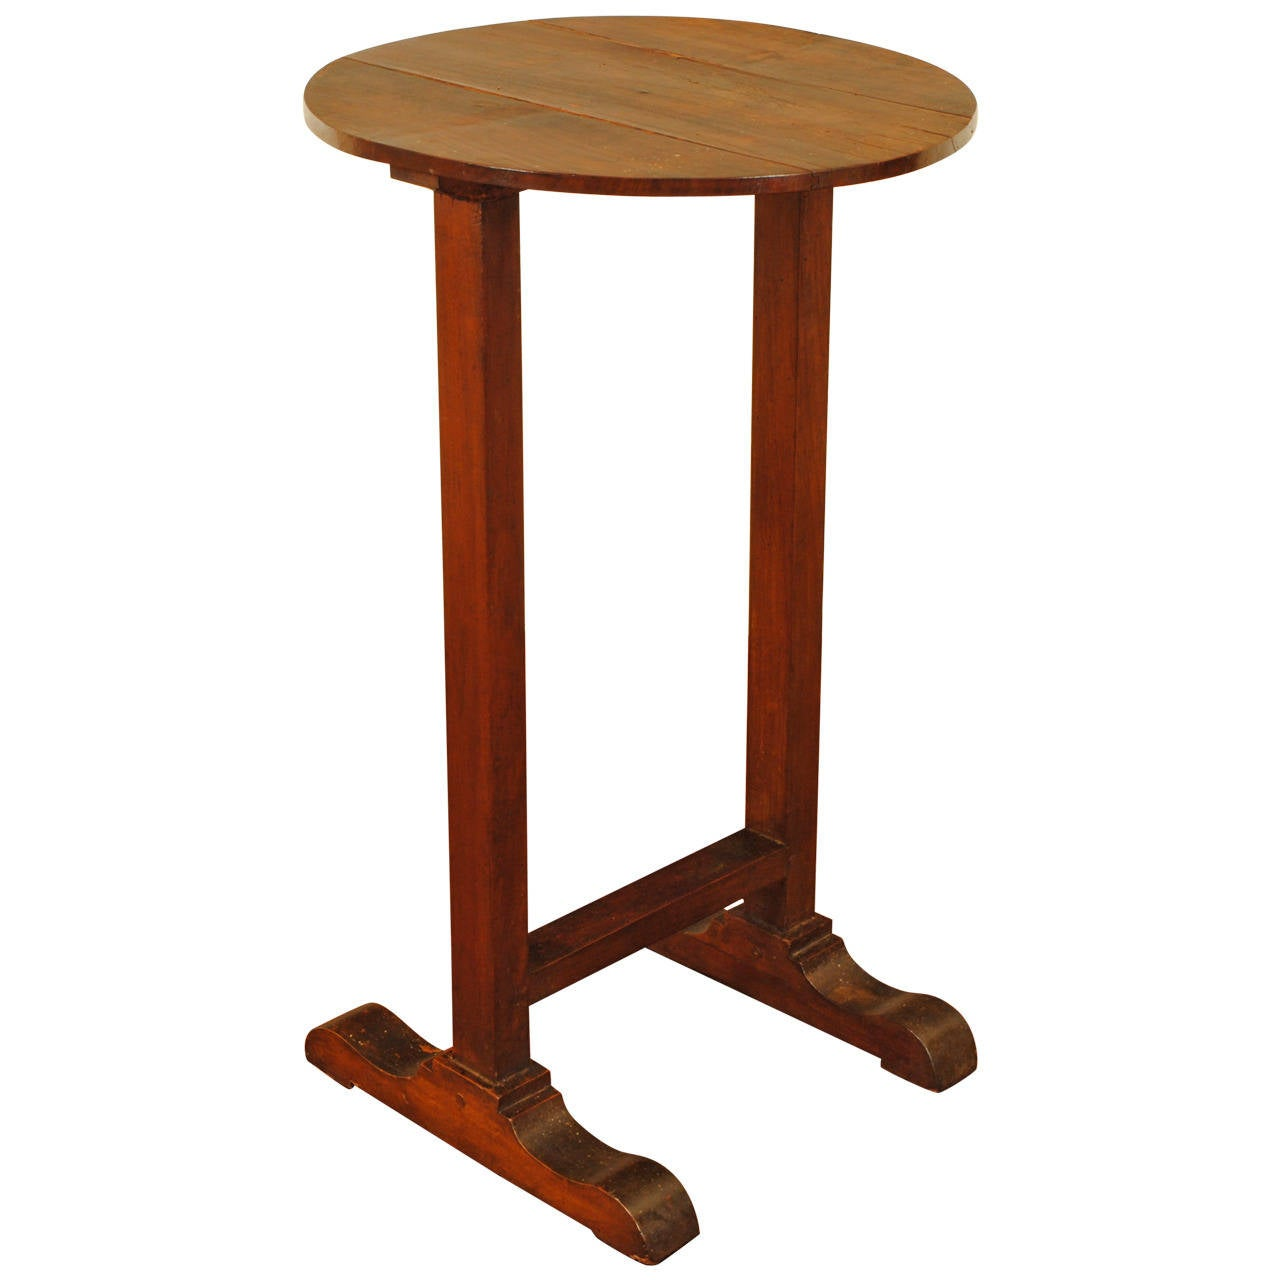 interesting french side table with trestle form feet mid